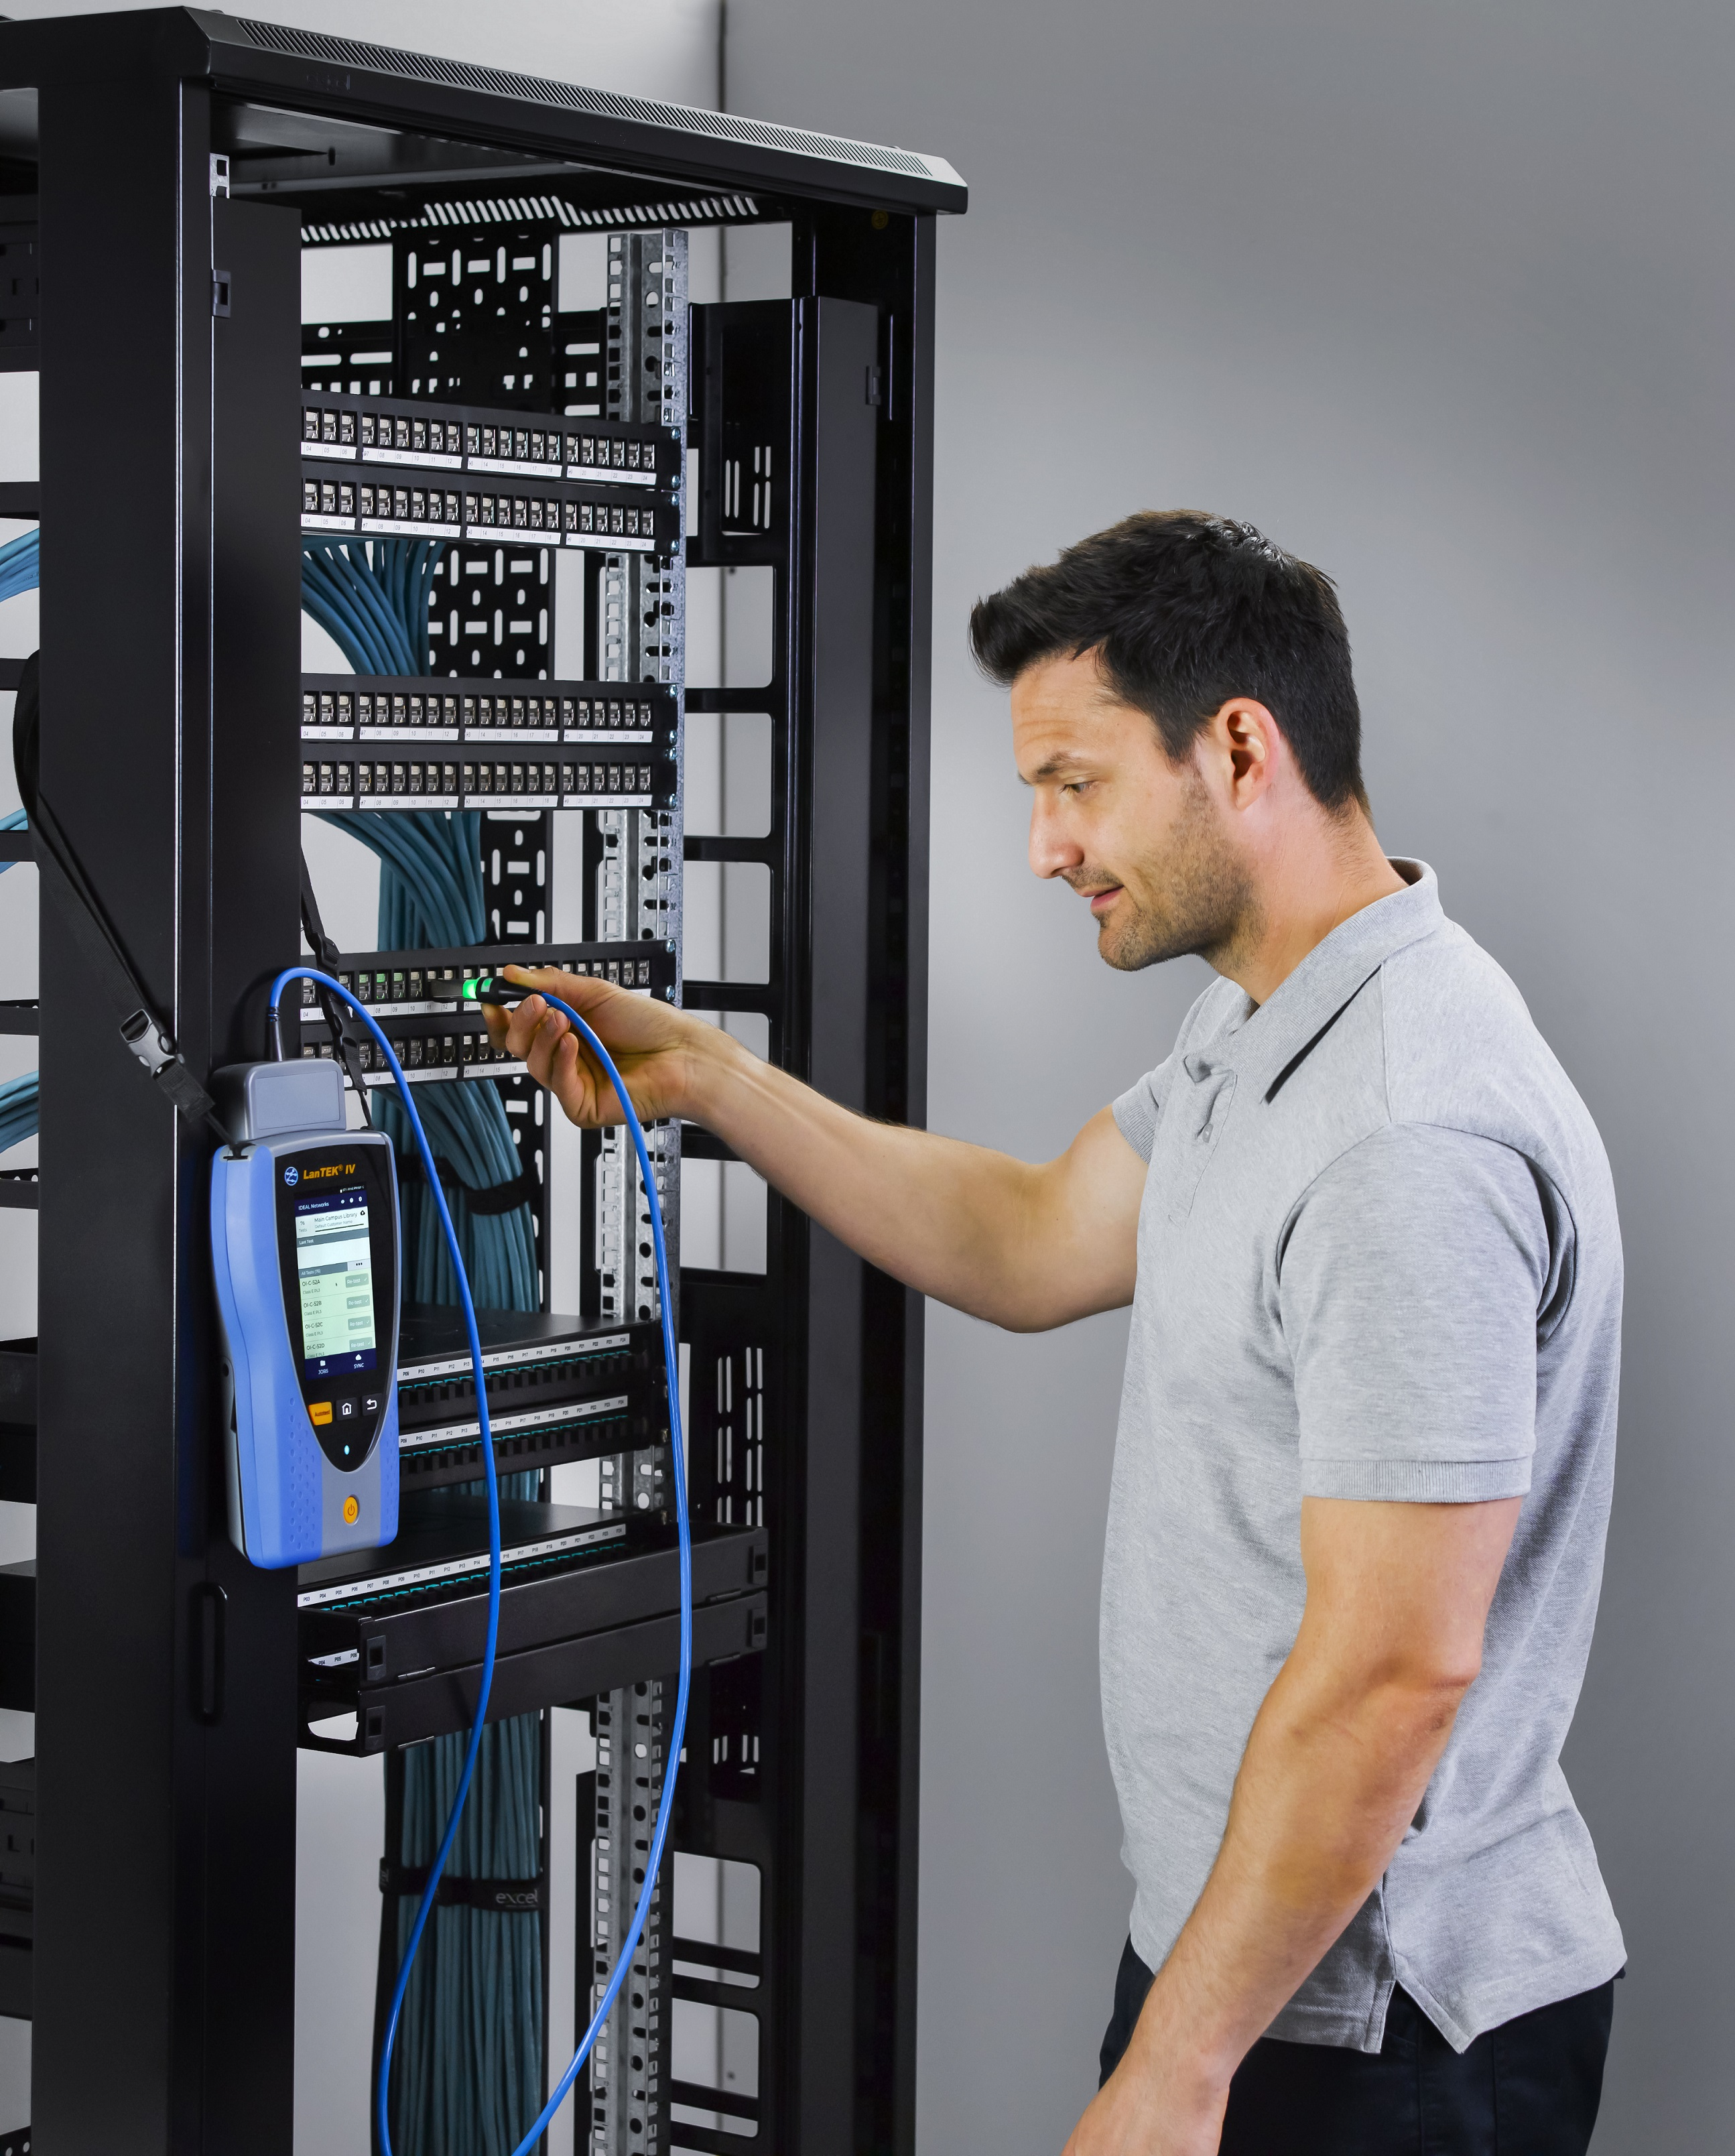 CABLE INSTALLERS OPTIMISE PRODUCTIVITY